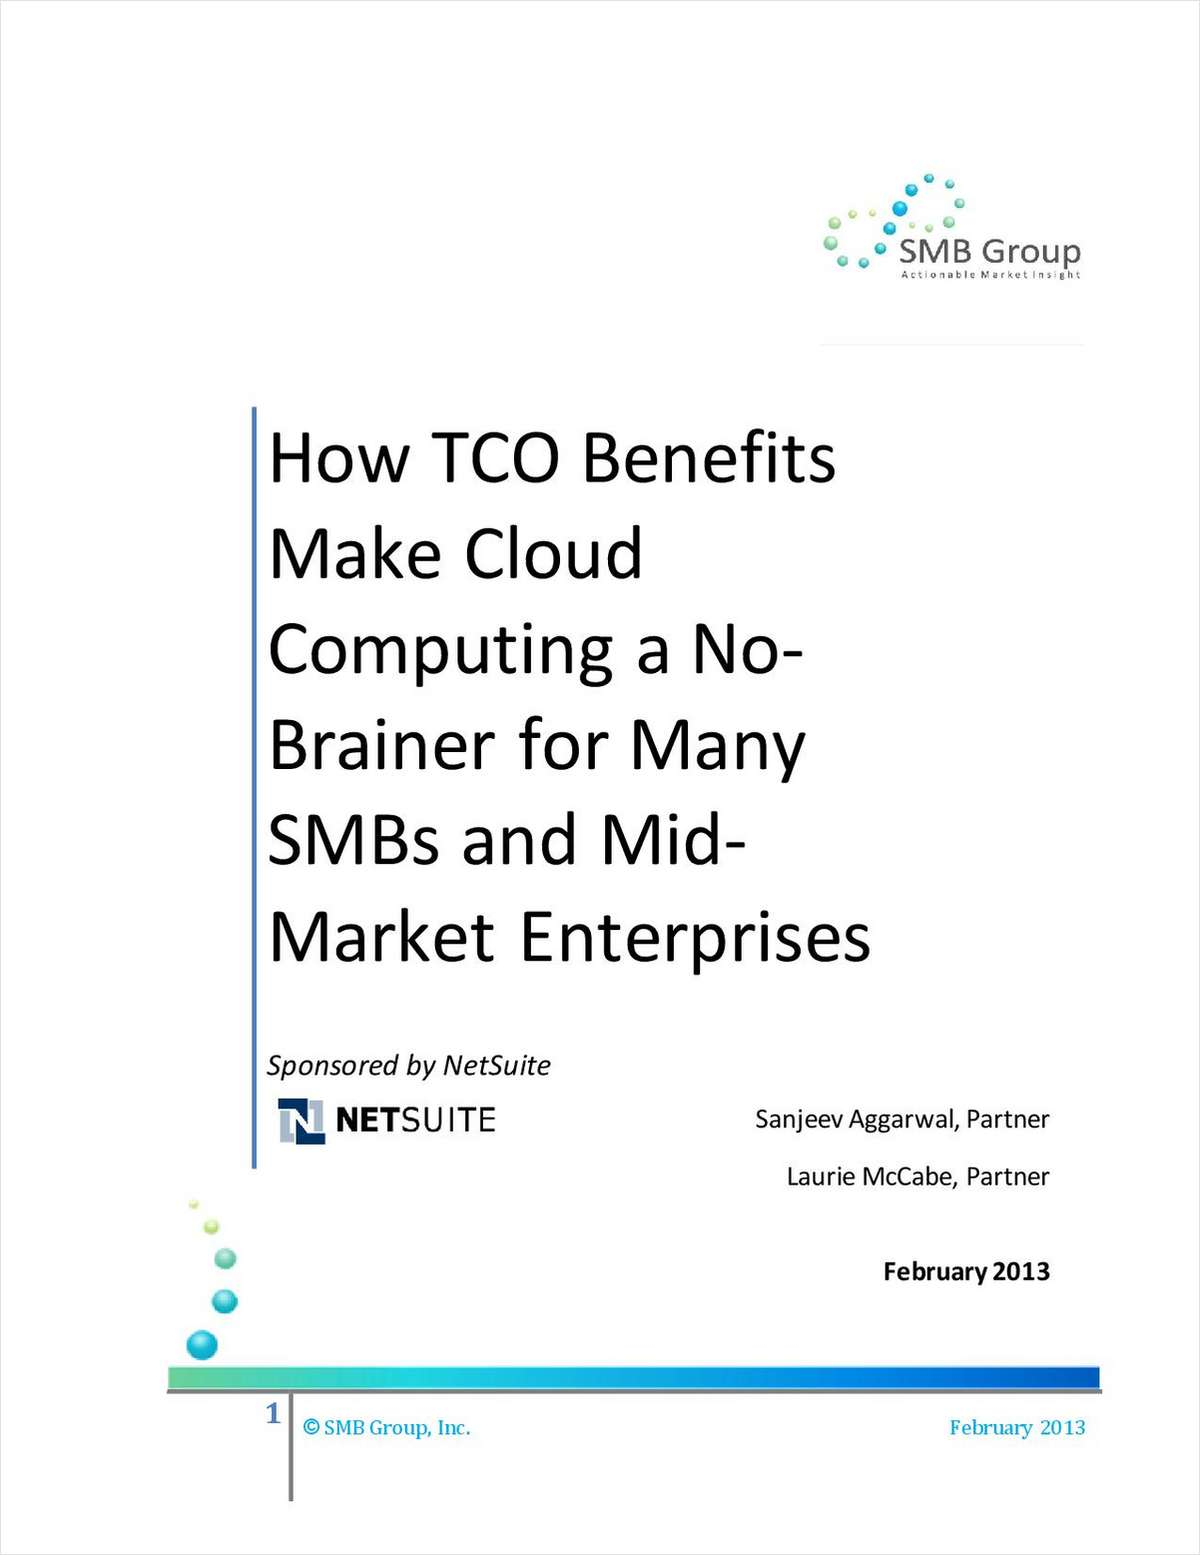 How TCO Benefits Make Cloud Computing a No-Brainer for Many SMBs and Mid- Market Enterprises